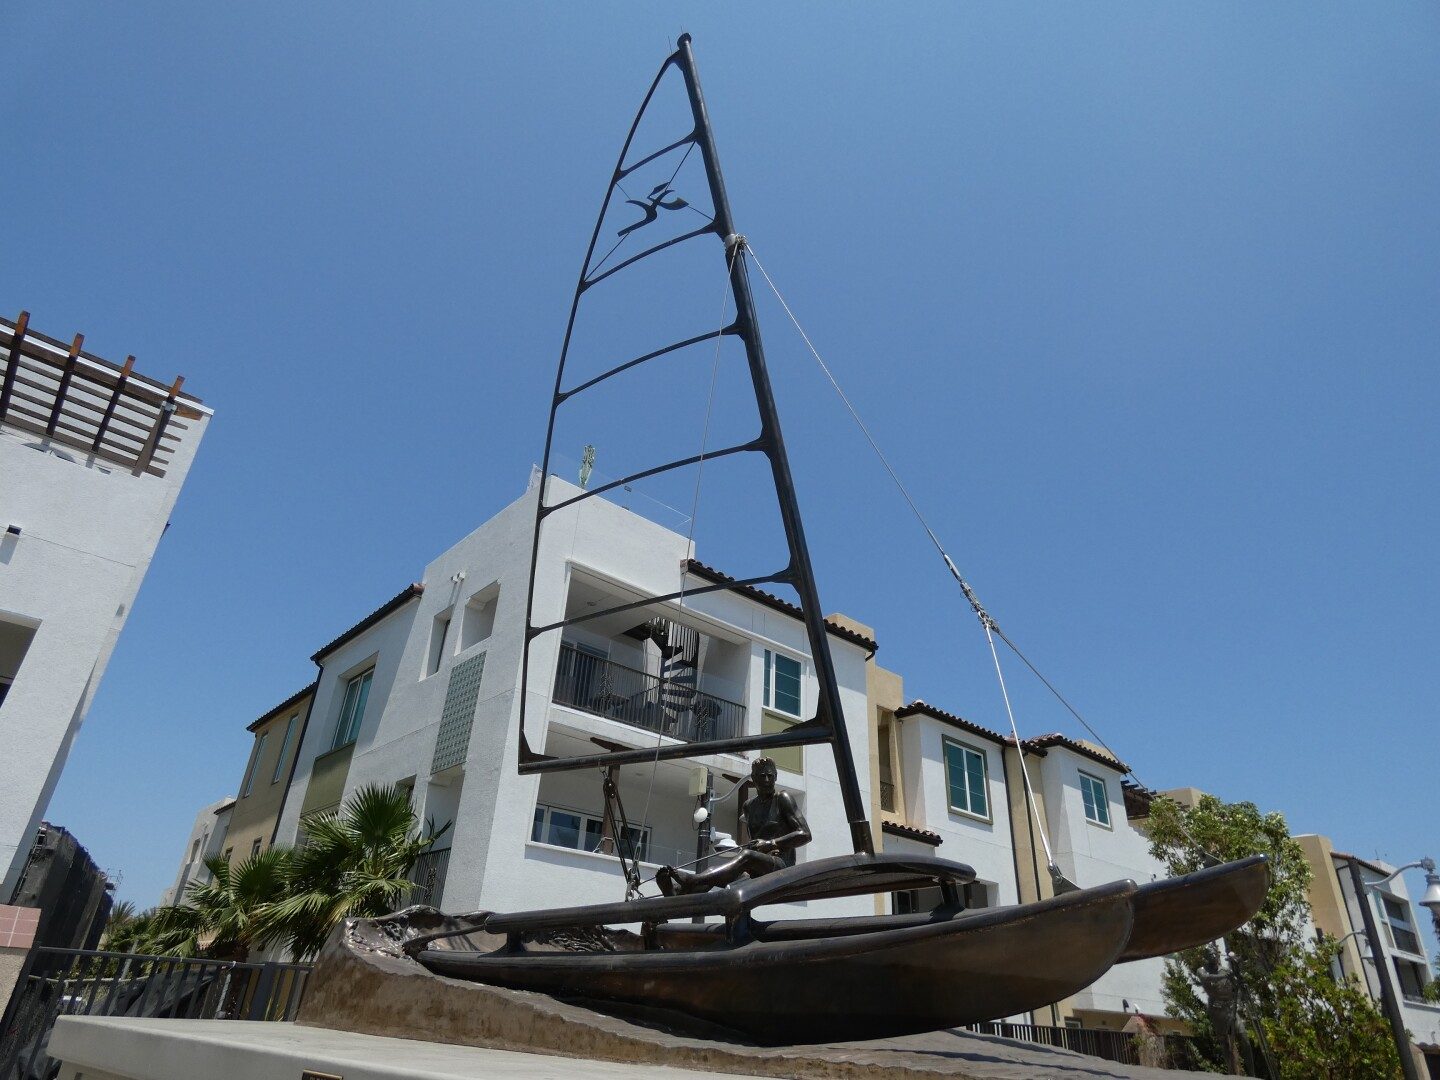 A bronze statue depicts surf and sailing pioneer Hobie Alter on a sail catamaran. Behind the sculpture are residential buildings.